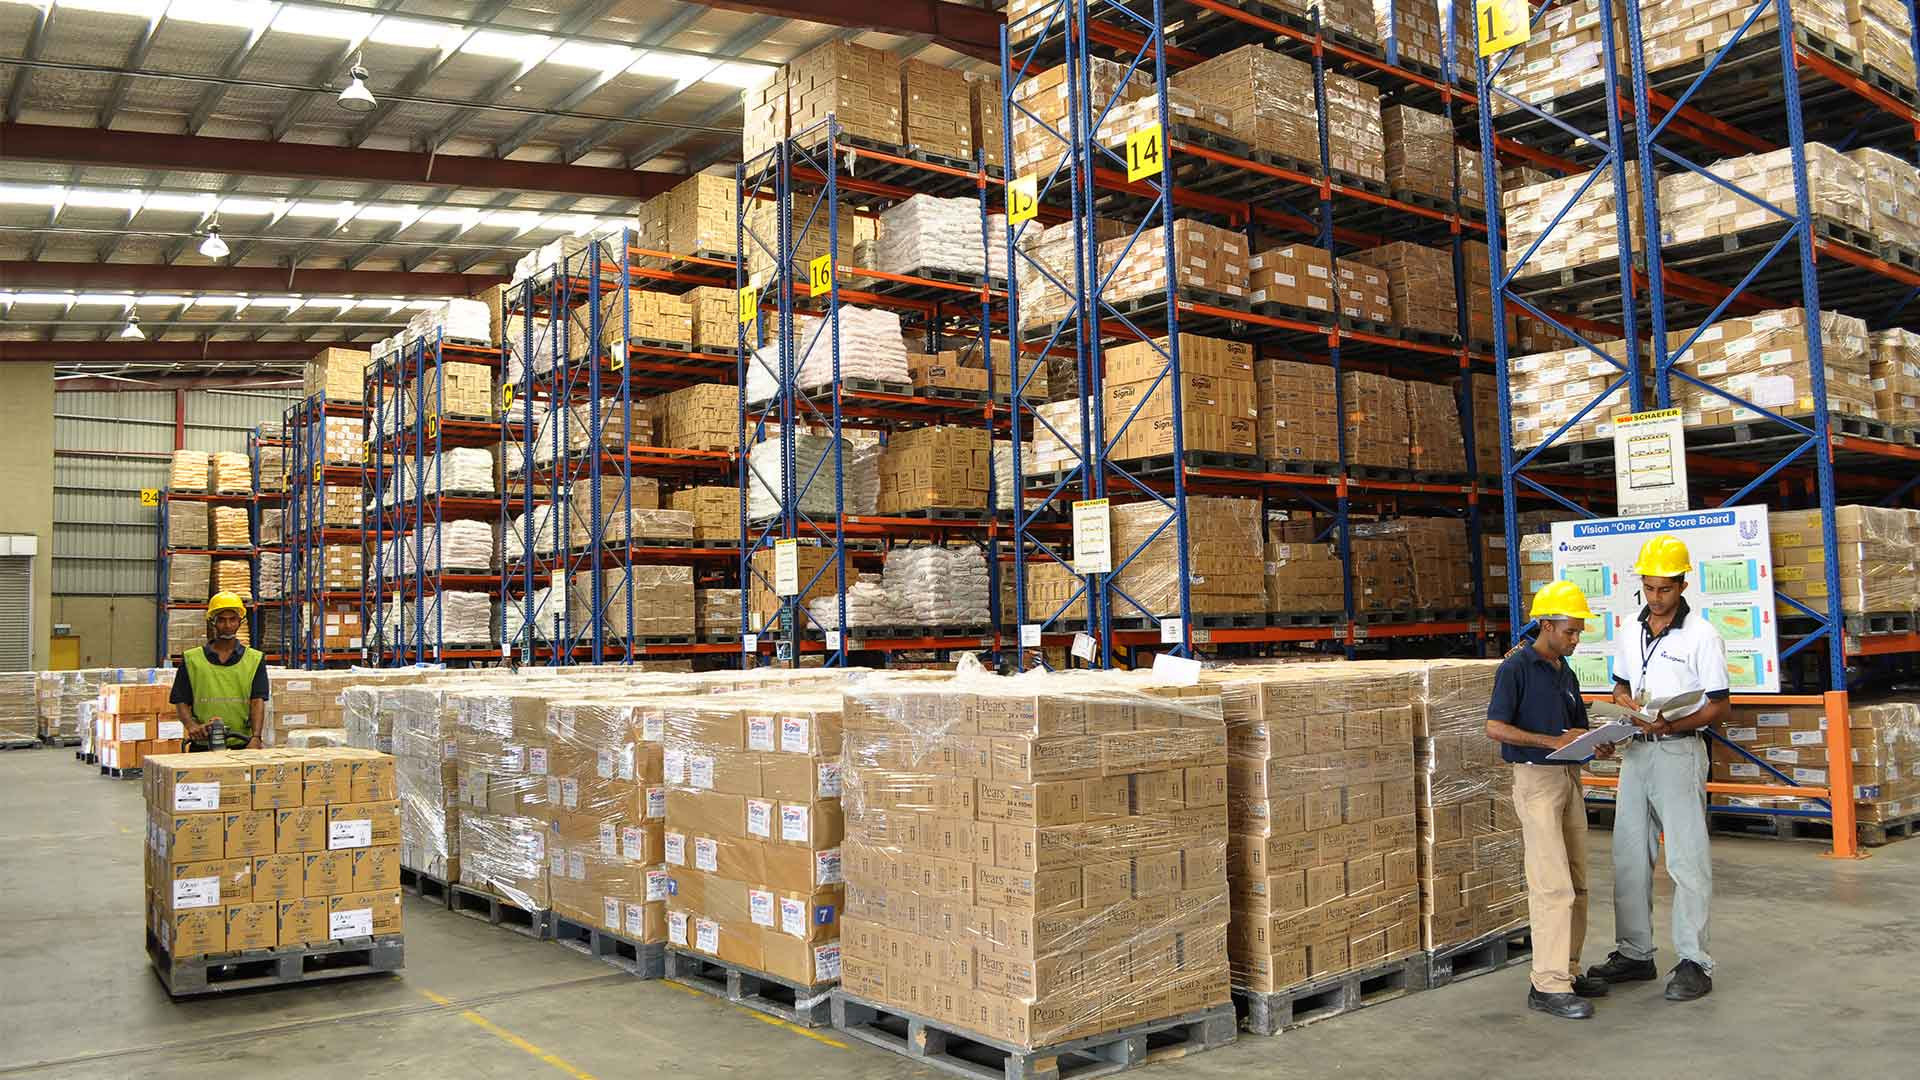 iot asset tracking logistics warehouses